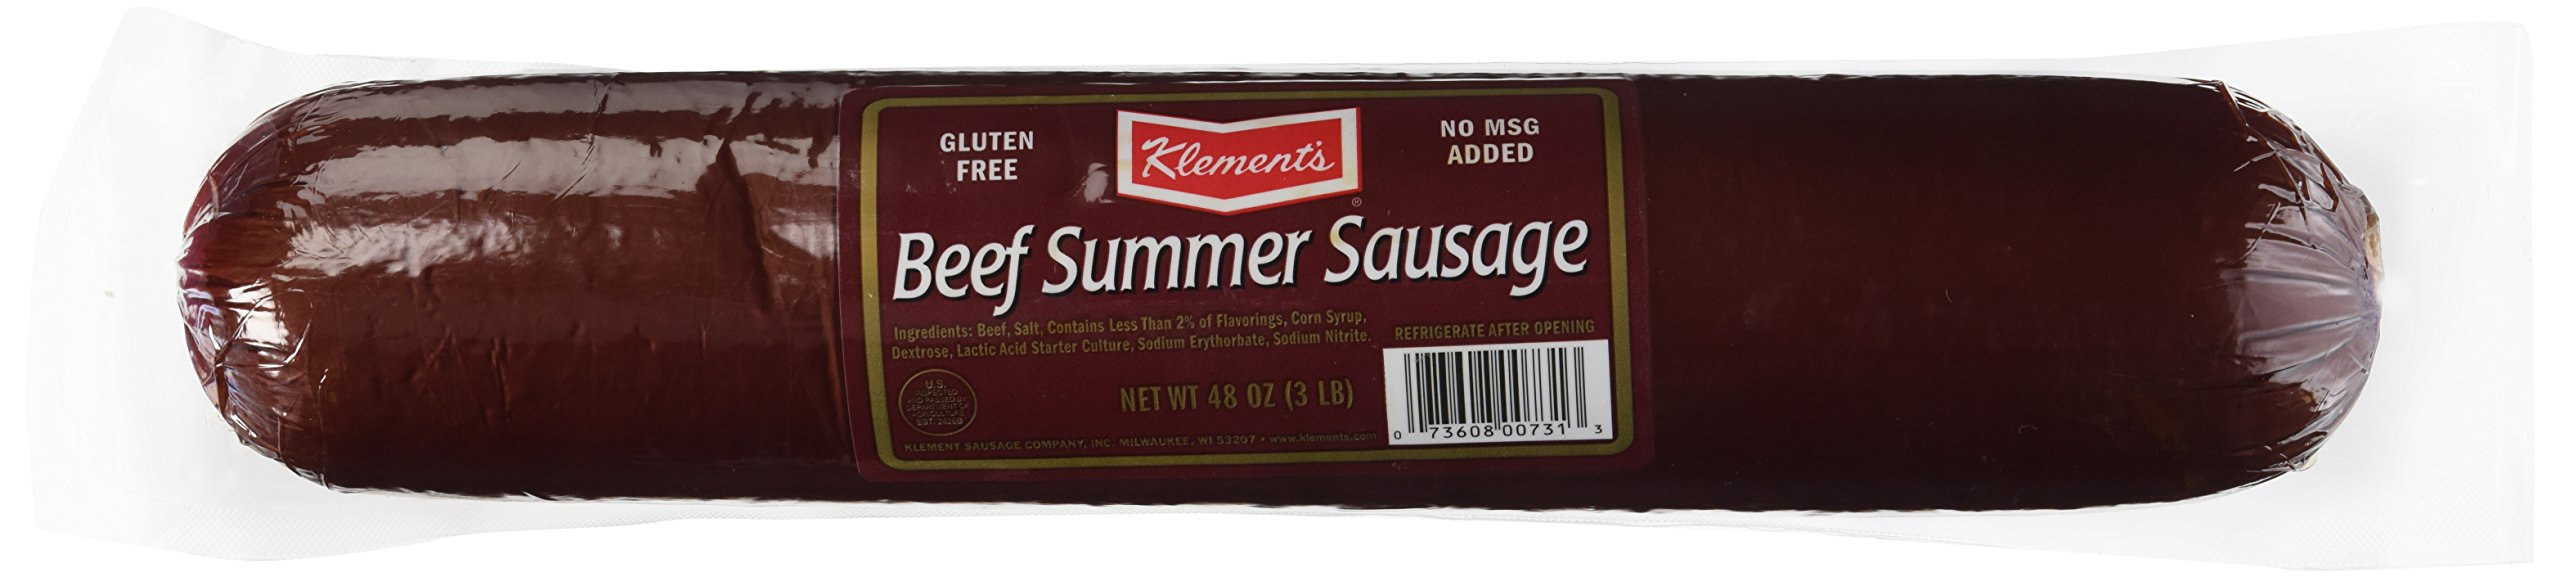 Klements beef summer sausage, 3-lb. plastic wrapped tube by Klement's (Image #1)